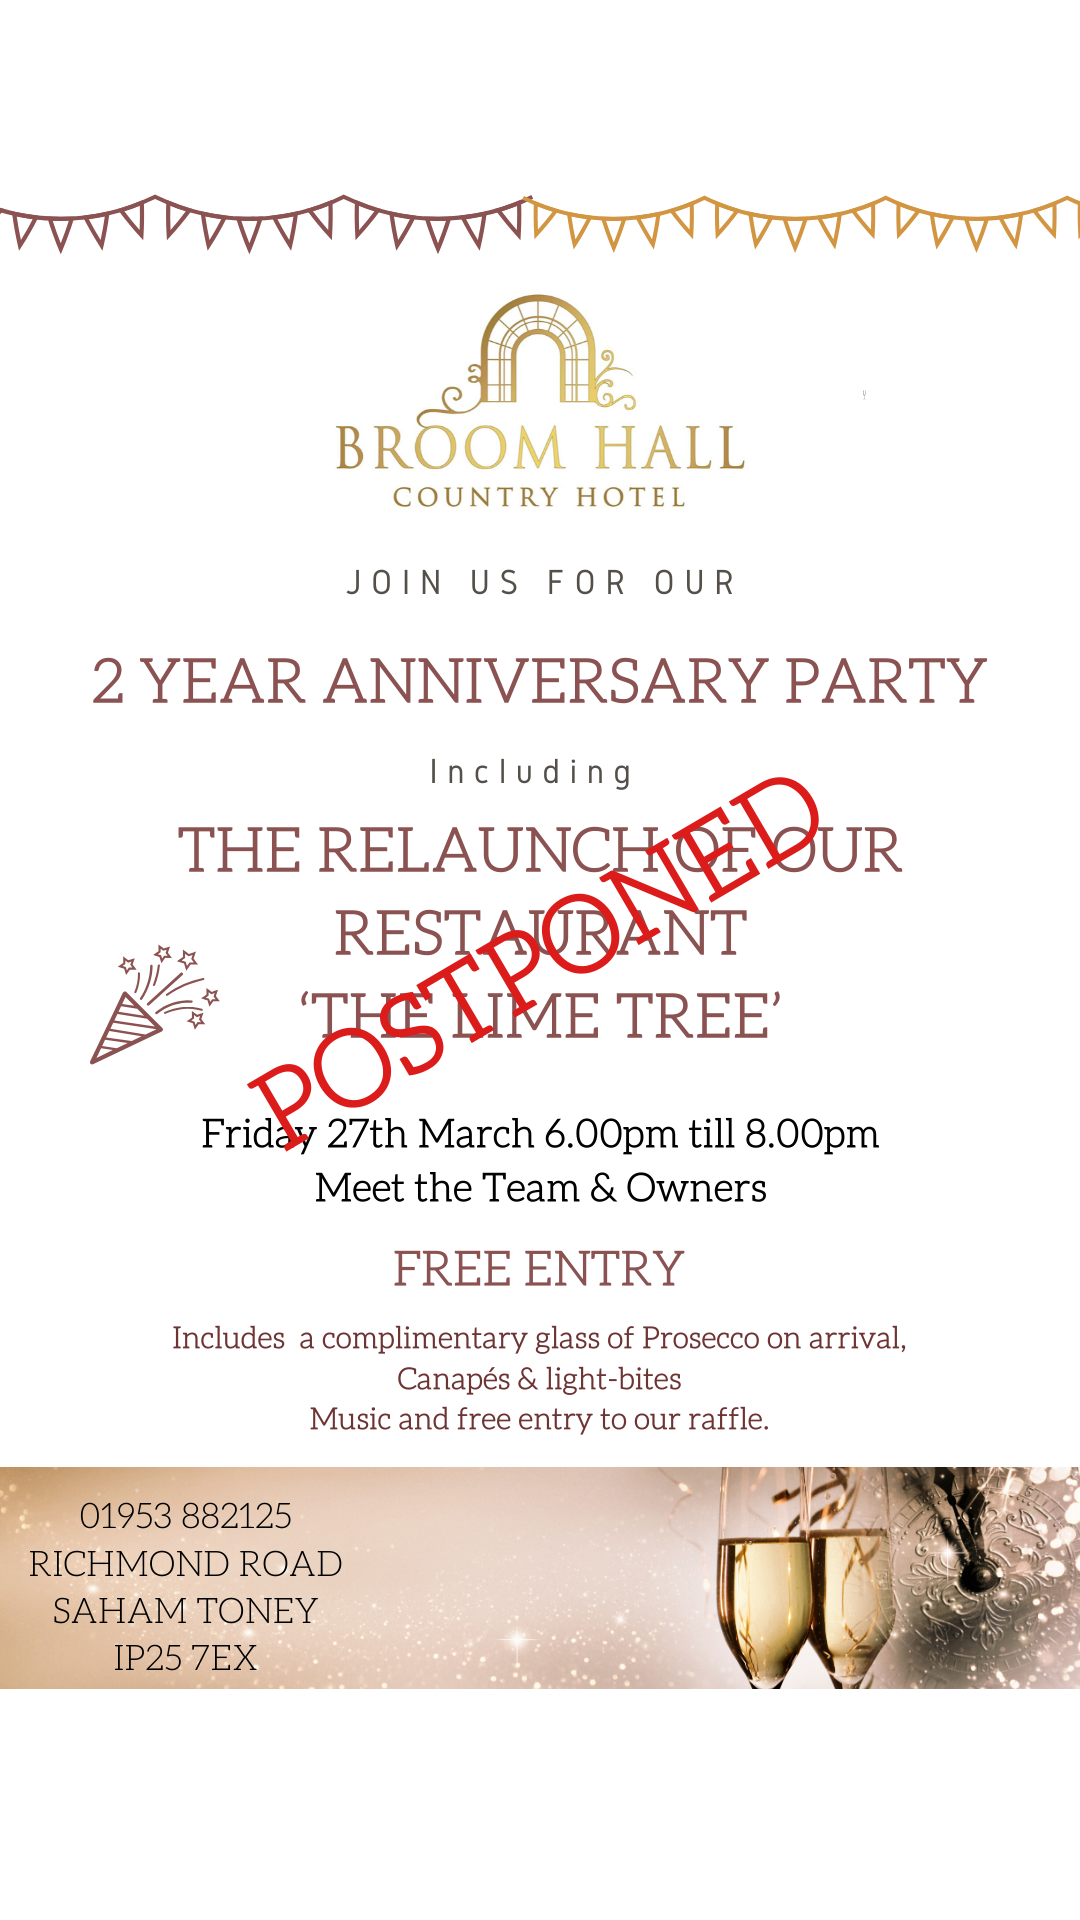 special Events at Broom Hall